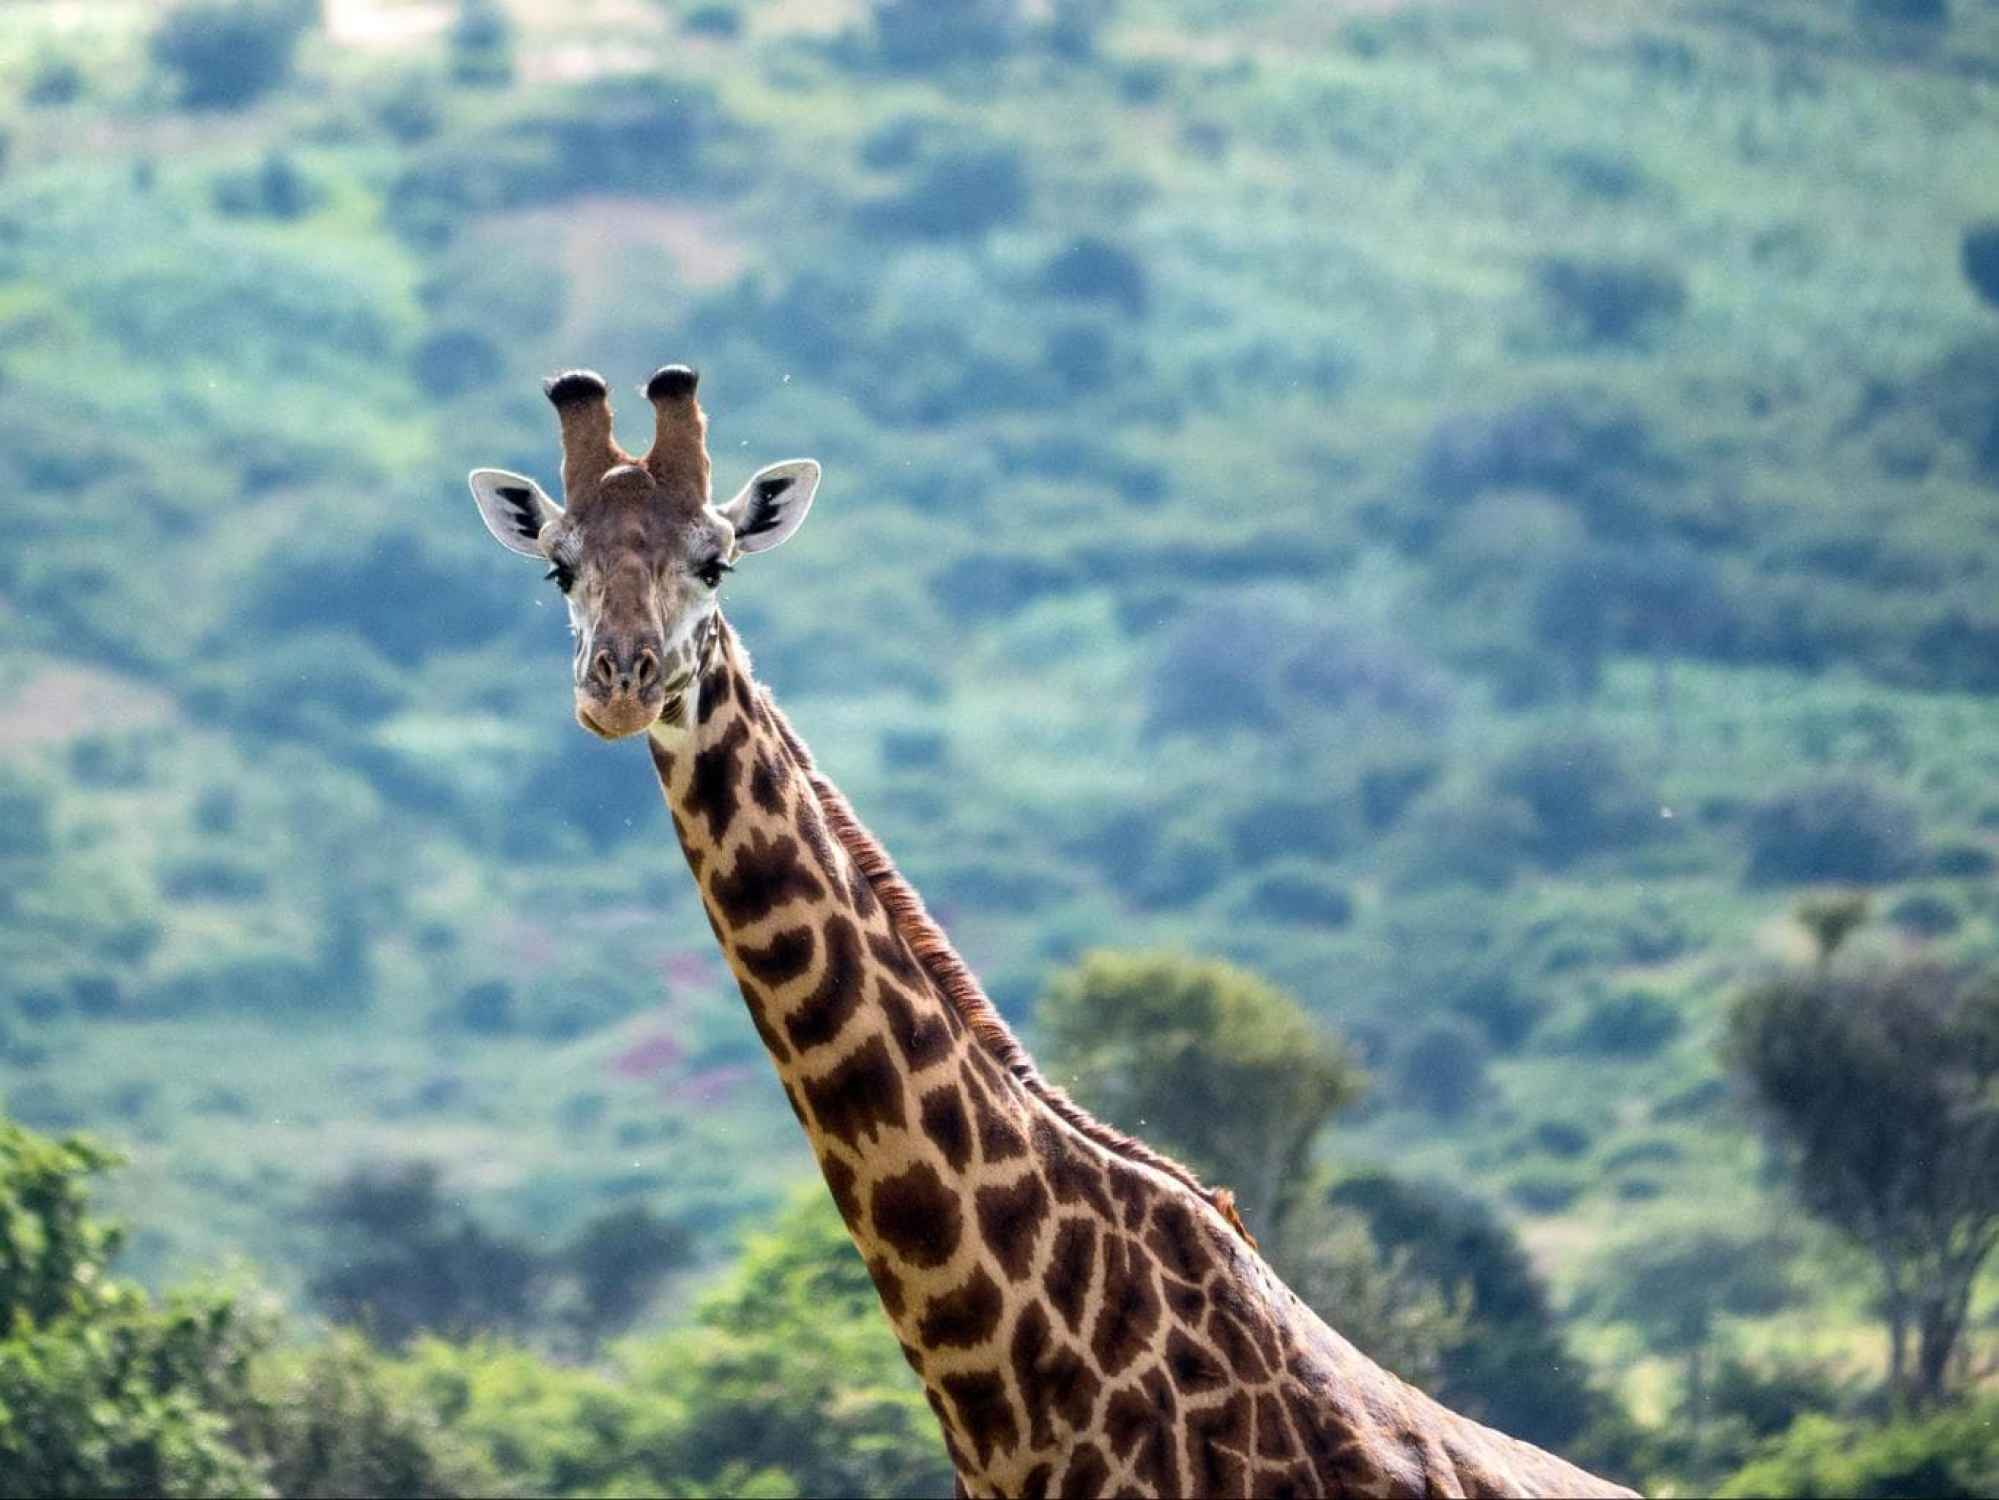 Giraffes areas of Akagera National Park